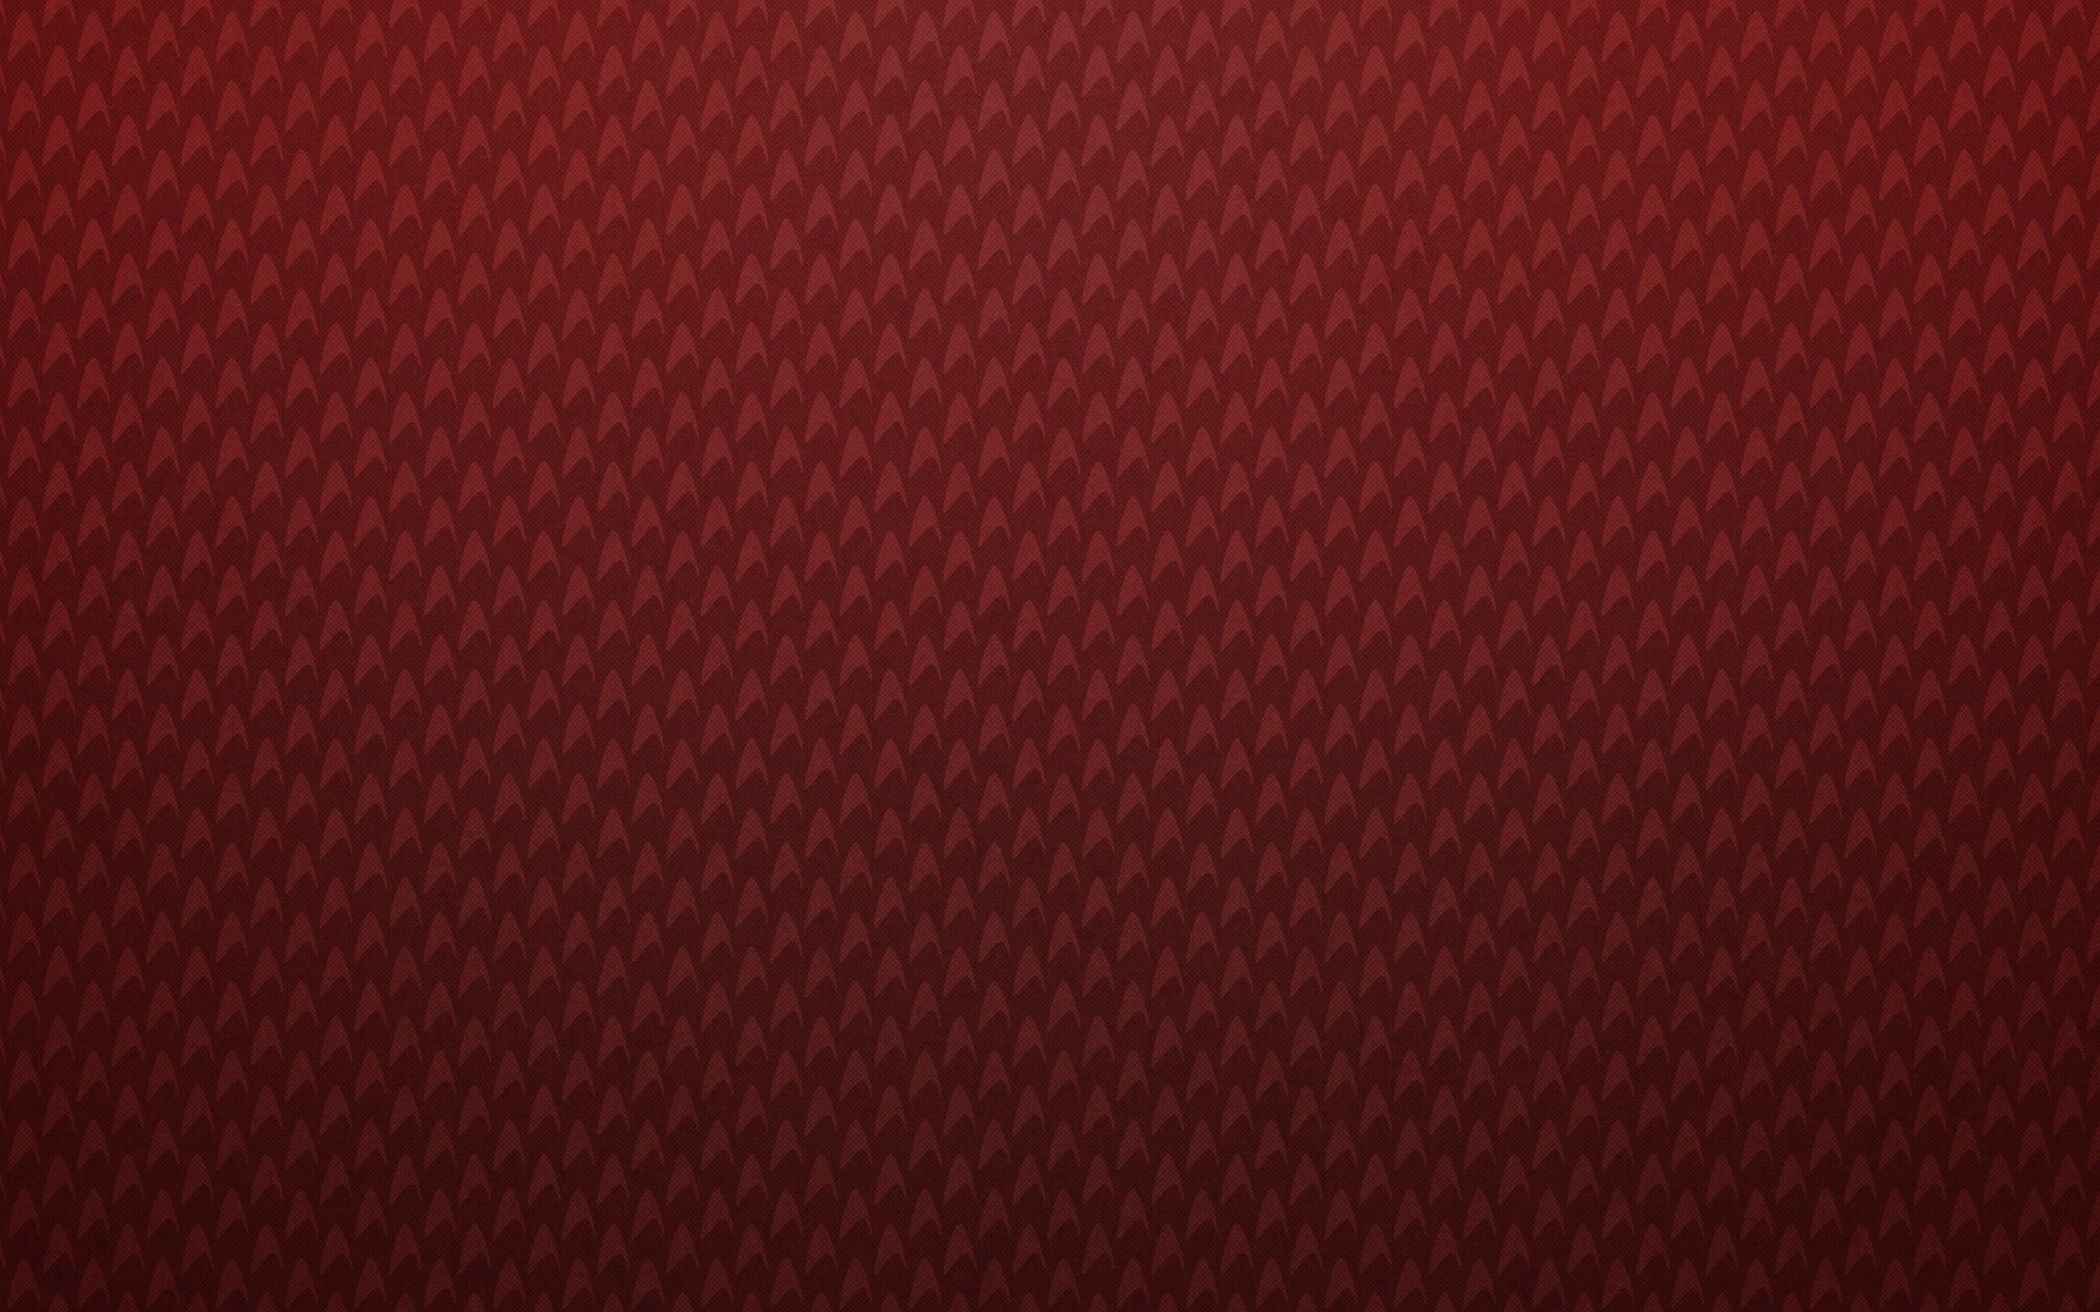 Red Wallpaper 020